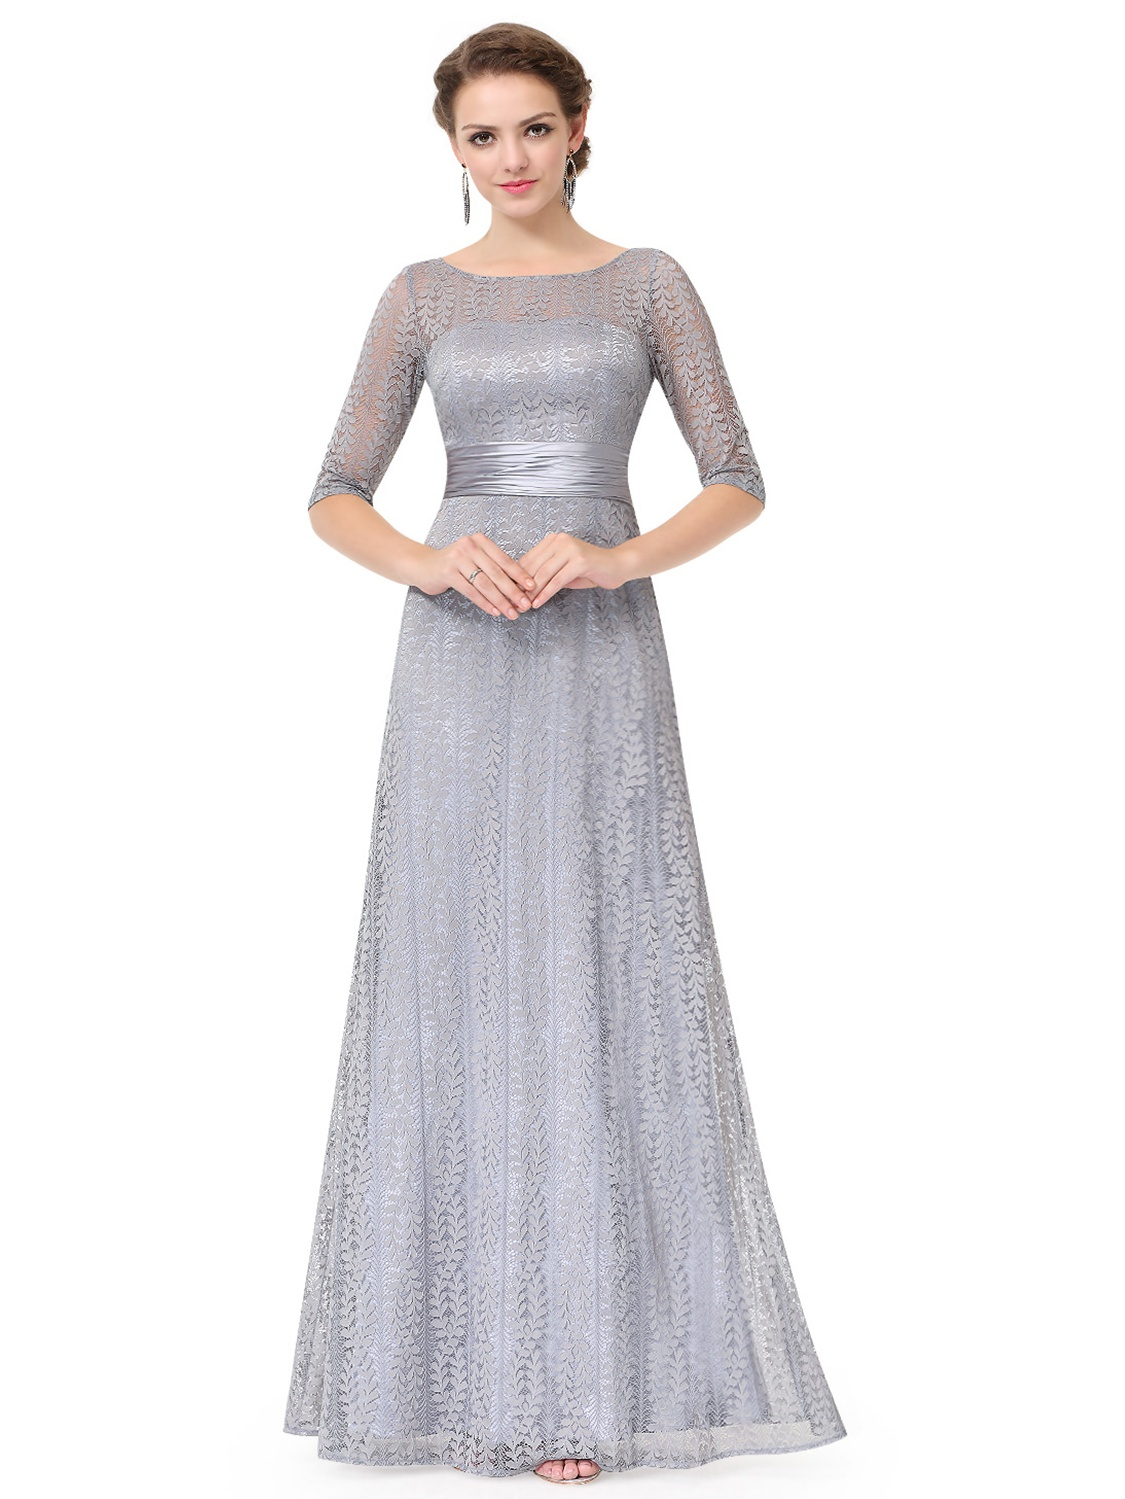 Ever-Pretty Women's Elegant Long A-Line Floral Lace Formal Evening Wedding Guest Mother of the Bride Dresses 08878 for... by Ever Pretty Garment Inc.